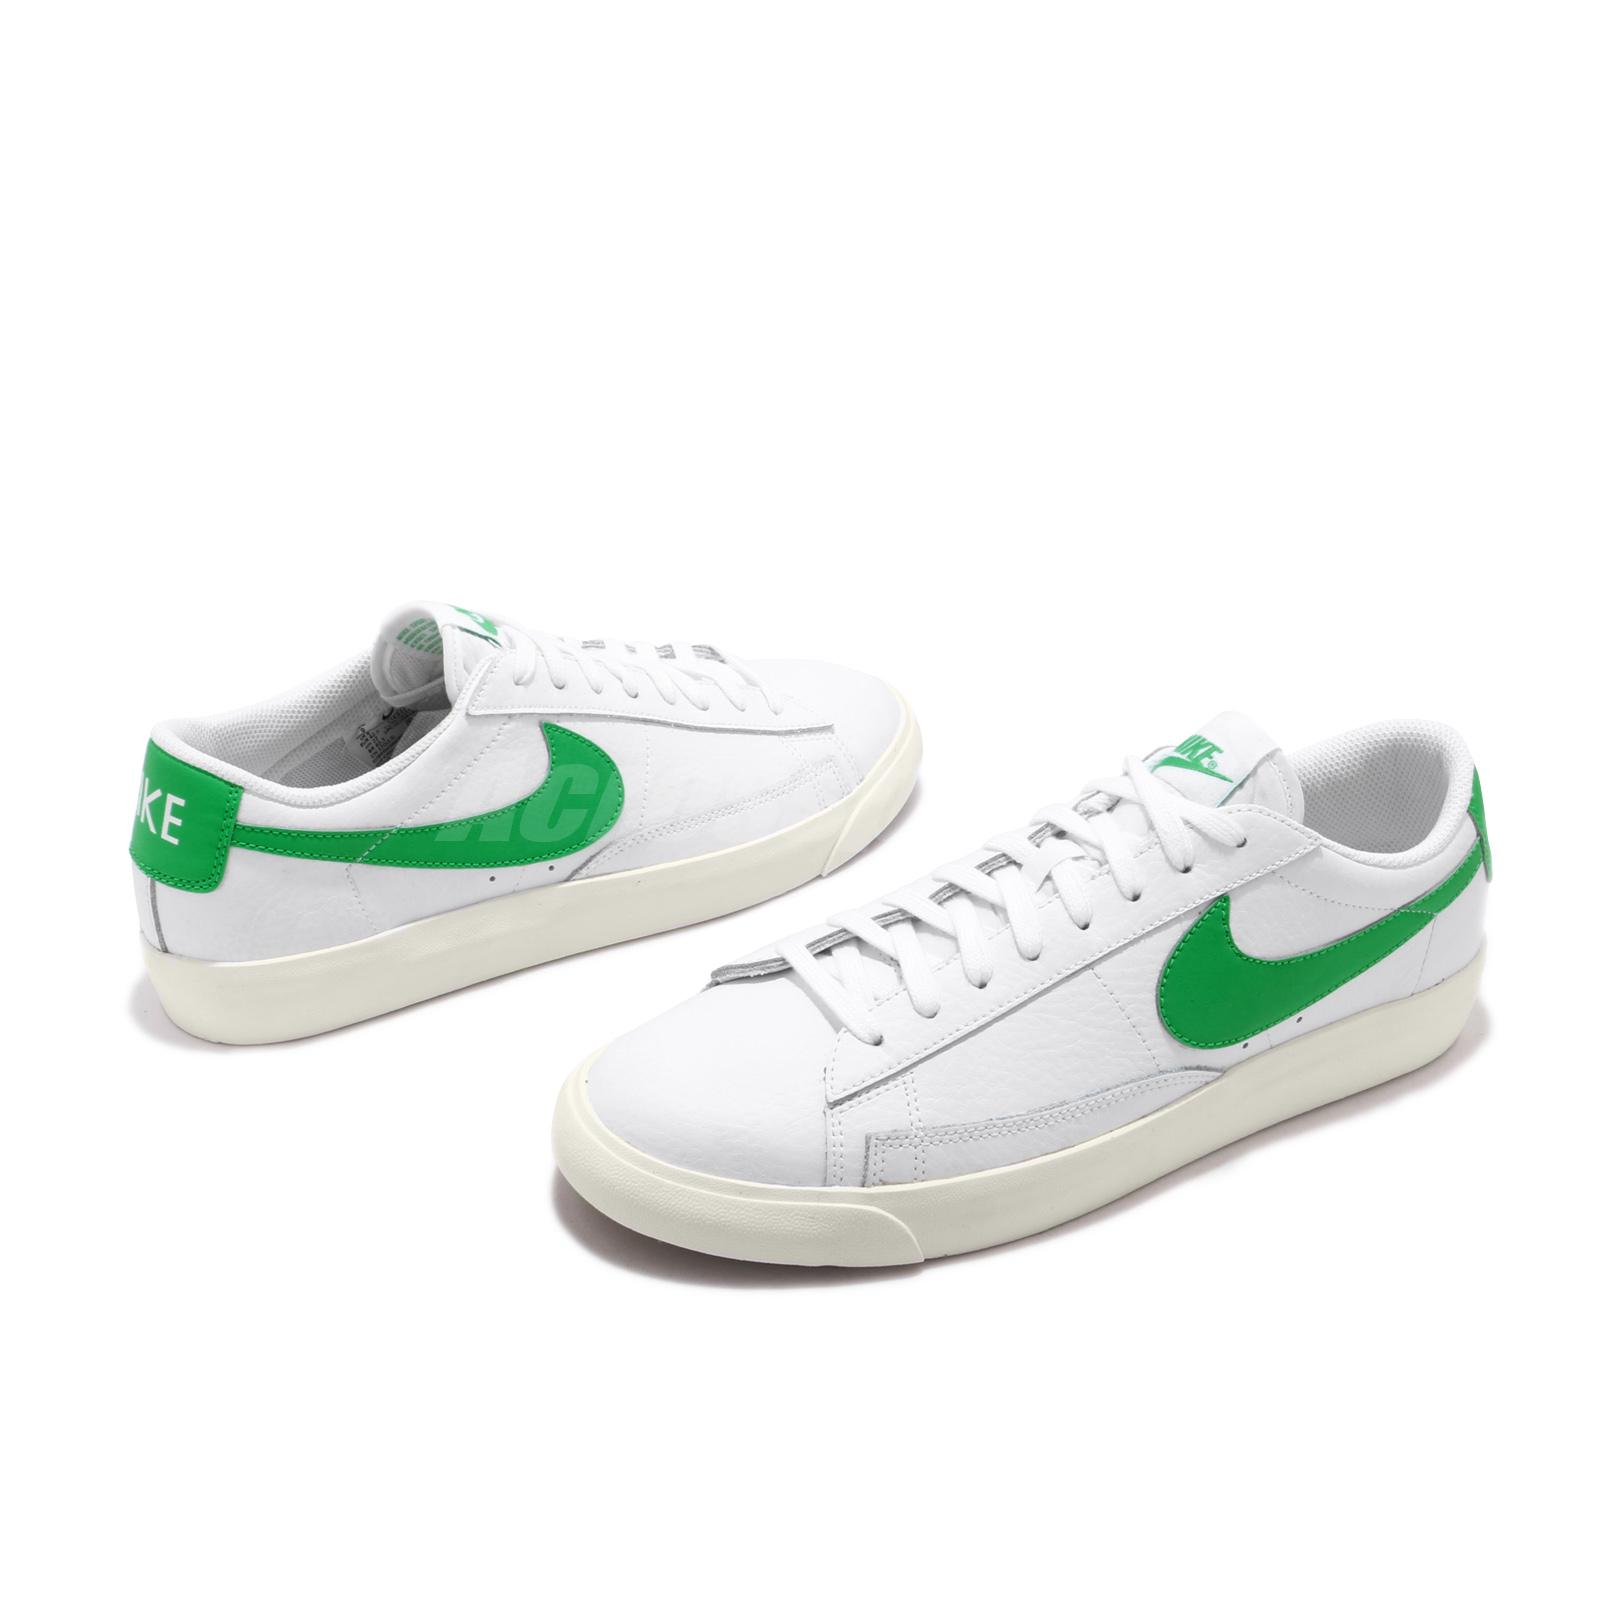 Details about Nike Blazer Low Leather White Green Spark Sail Men Classic  Shoes CI6377-105